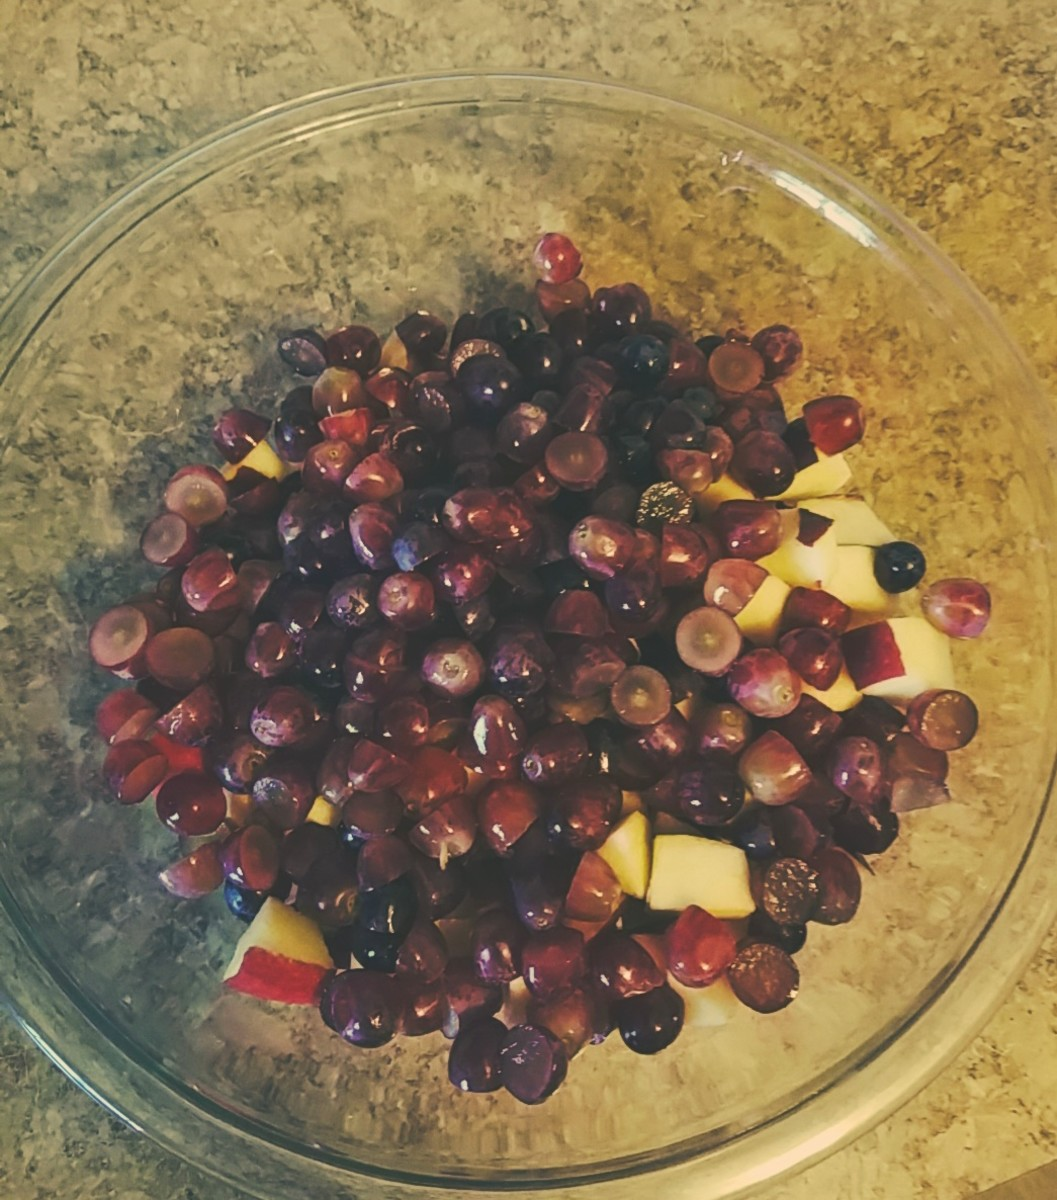 Put the grape halves into the mixing bowl.